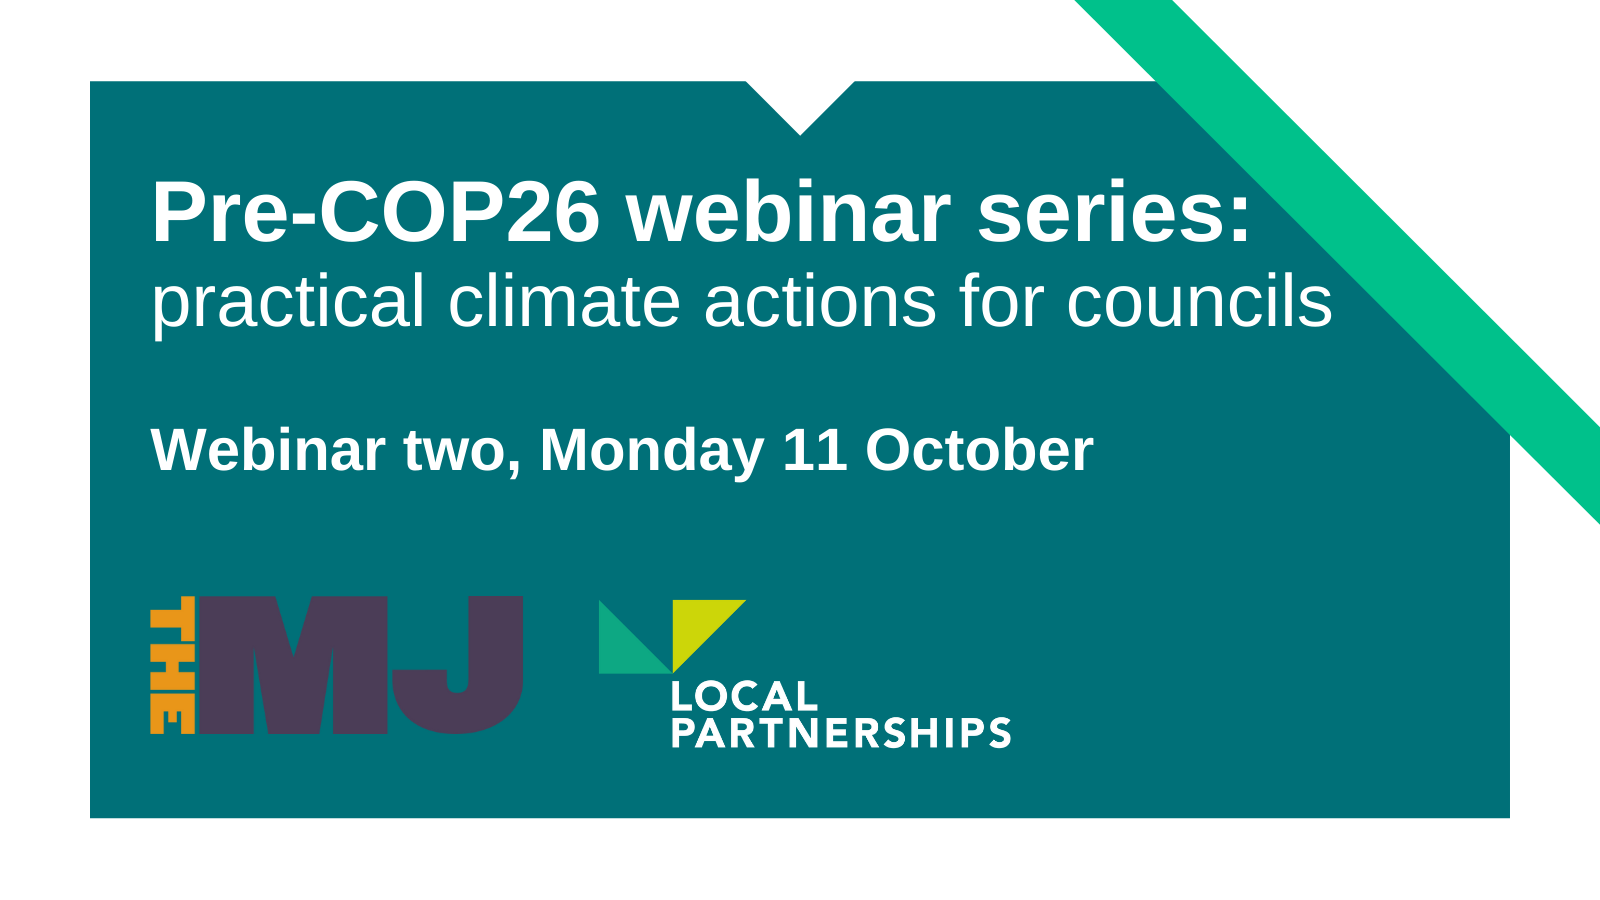 Action on climate crisis webinar two: The MJ and Local Partnerships